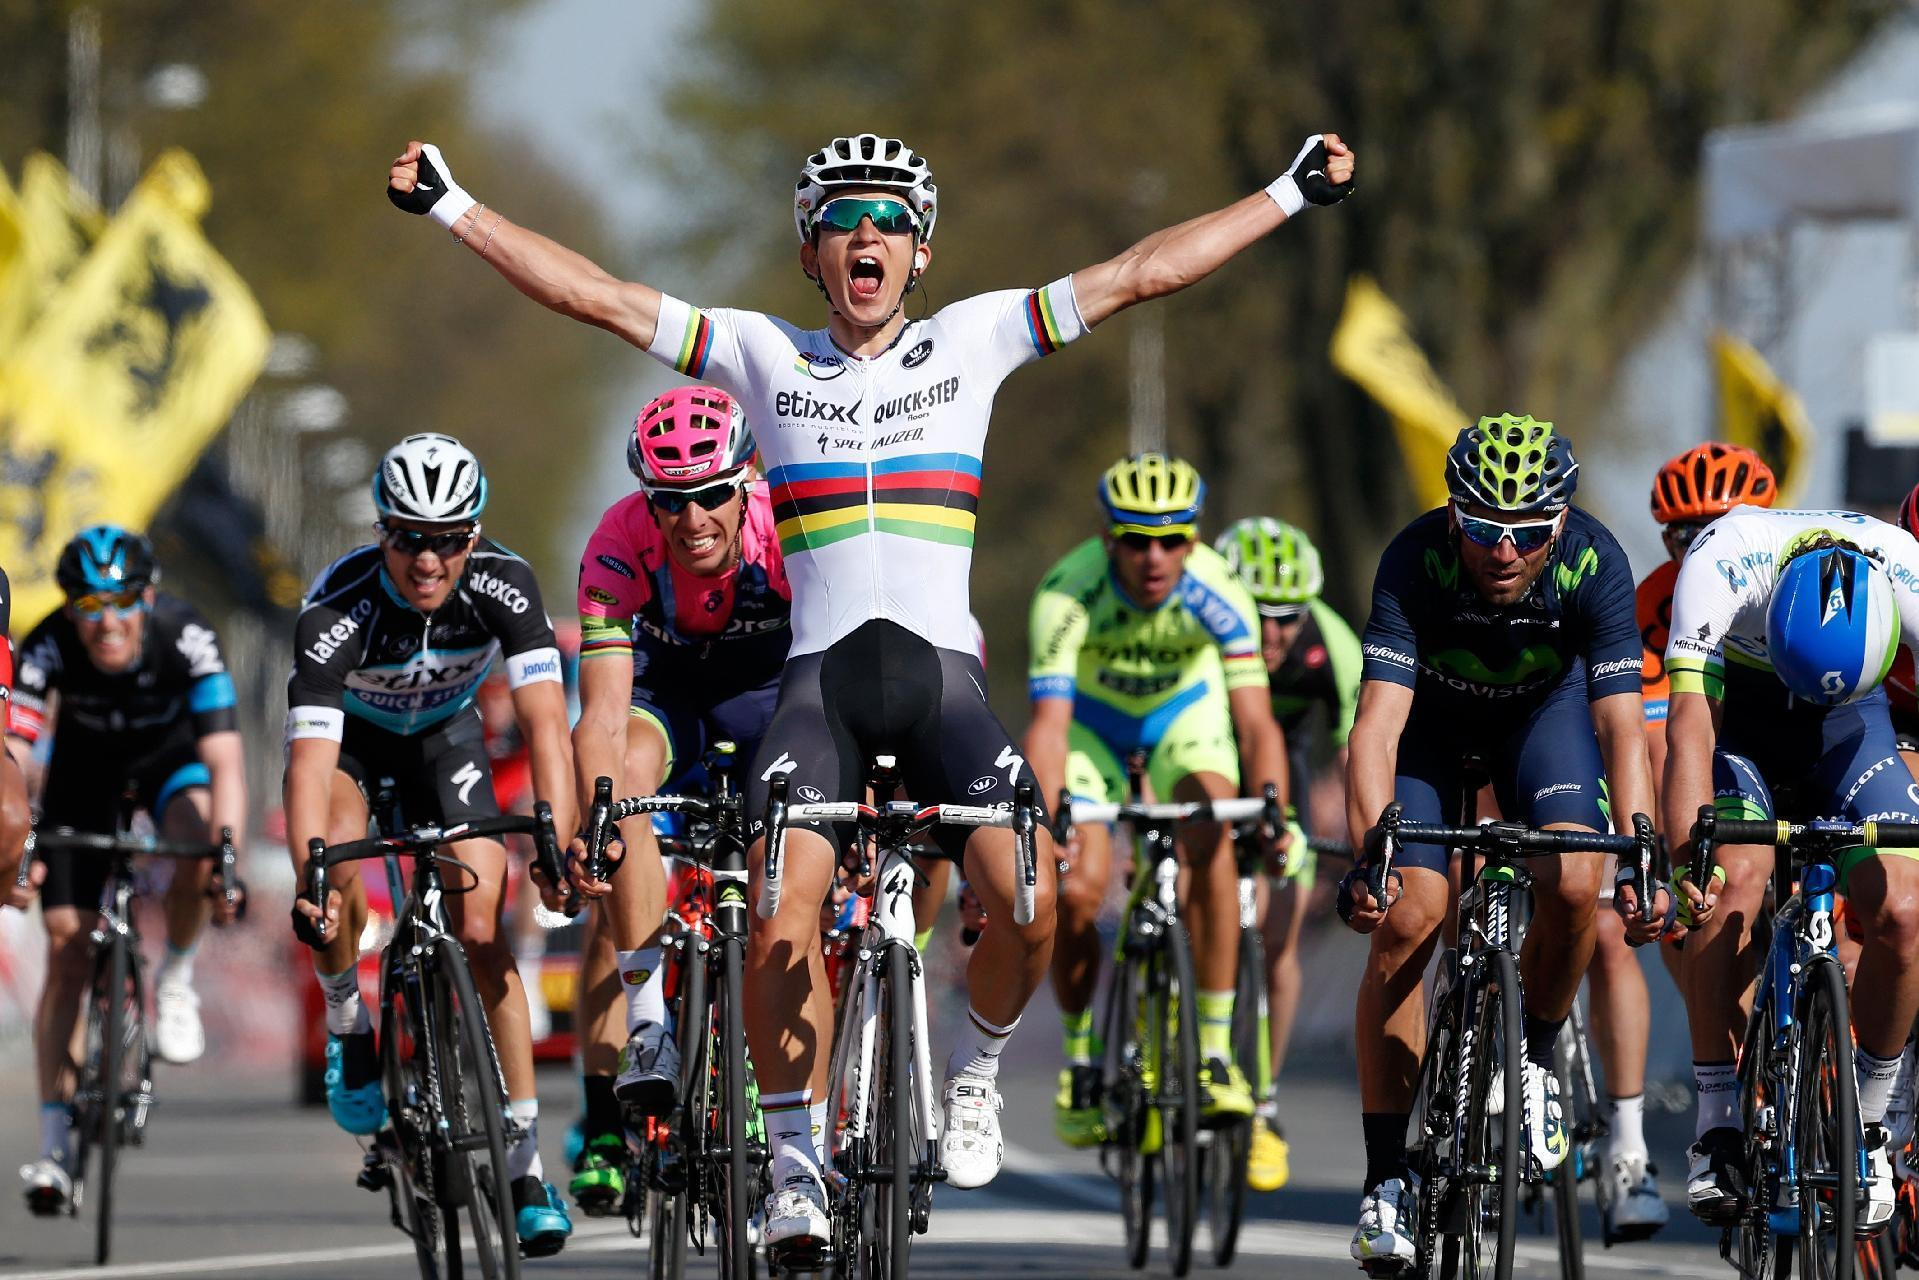 World champion Kwiatkowski wins Amstel Gold Race